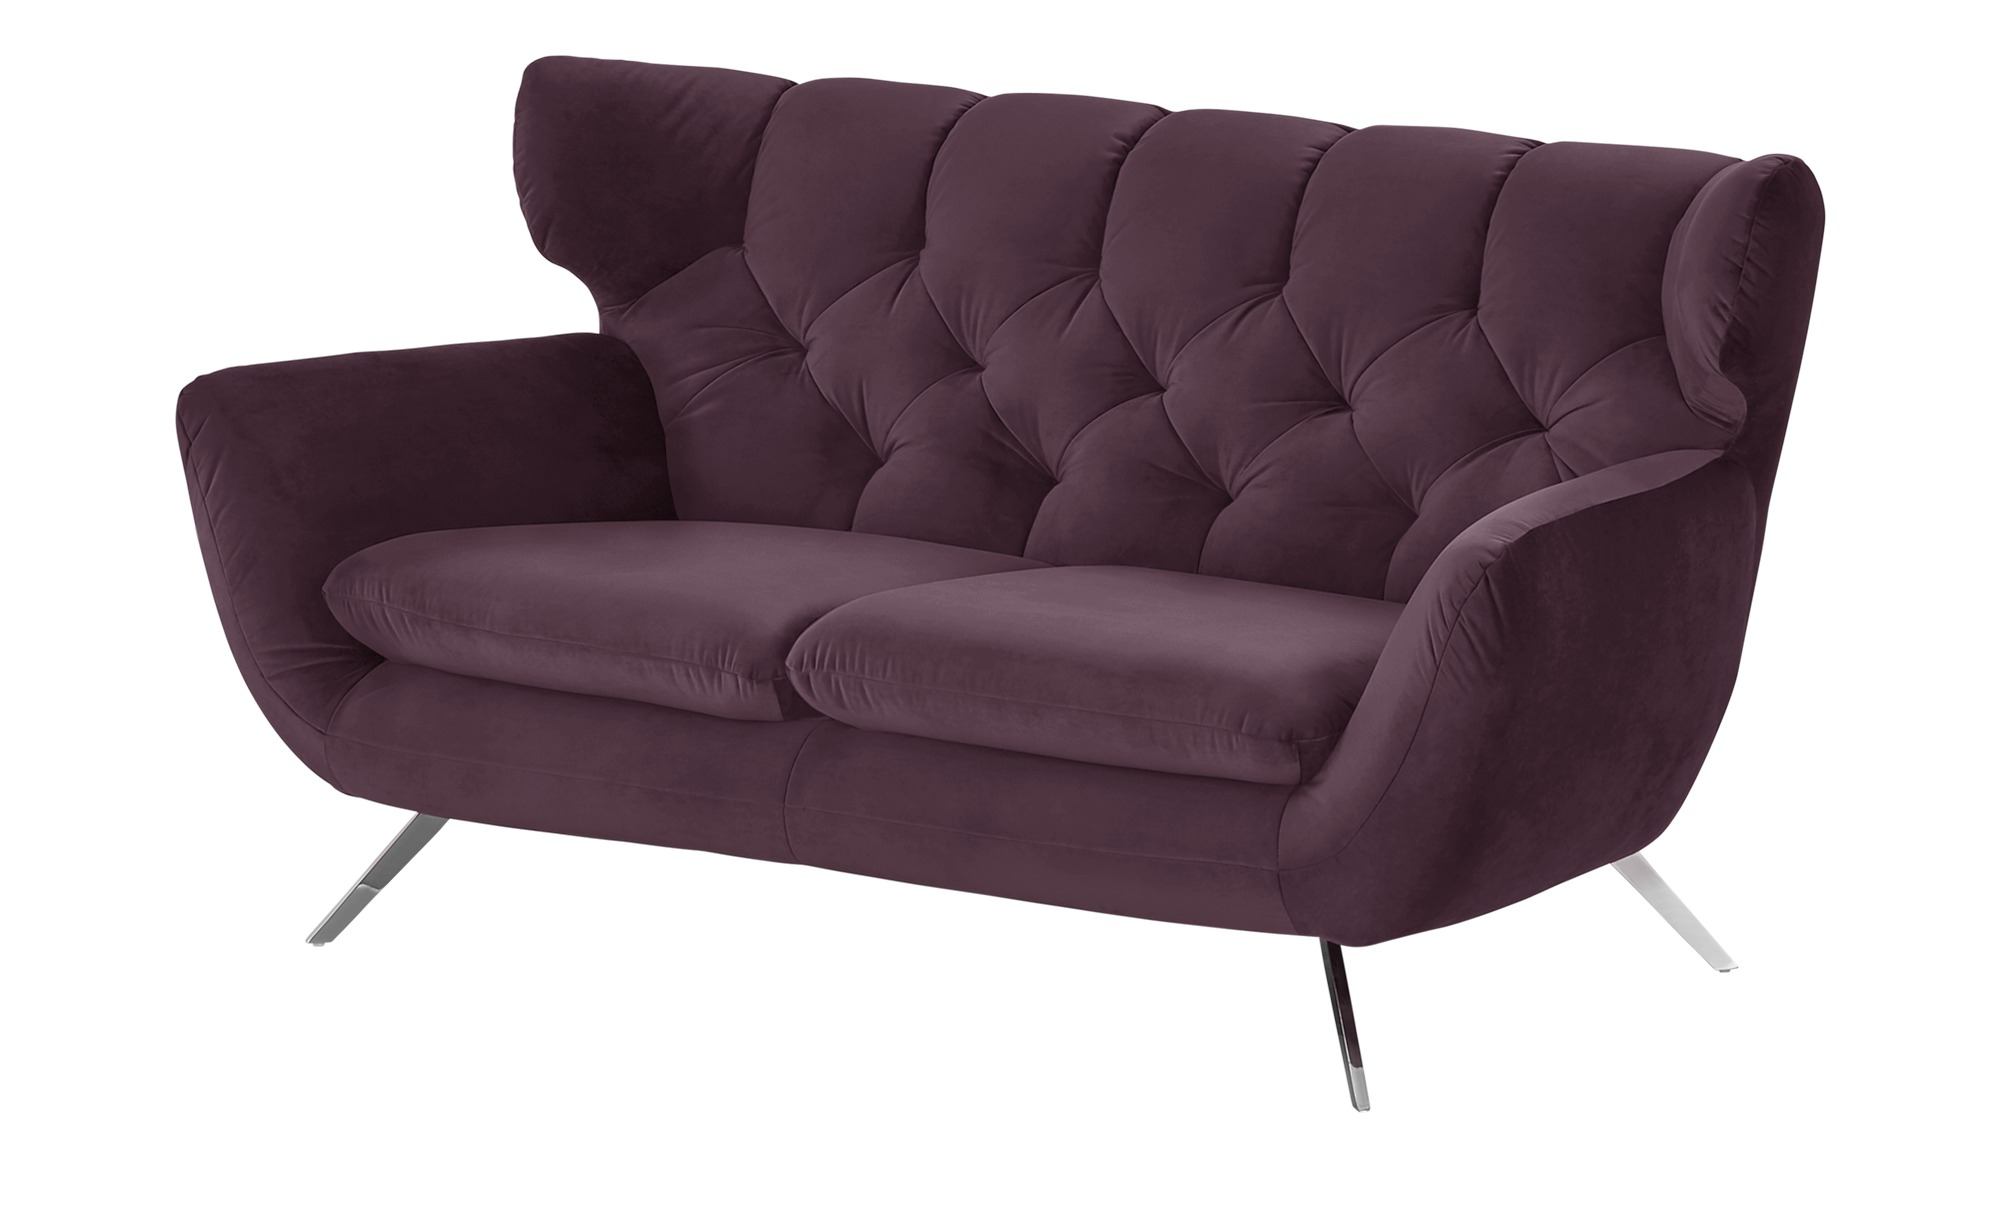 Full Size of Sofa Lilac Lilah Corner Bed Set Lila Samt 3 Piece Suite Chair Ikea Raymour Salon Queen Sleeper Uk Throws And Flanigan Emerald Craft Sitzsack Chesterfield Sofa Sofa Lila